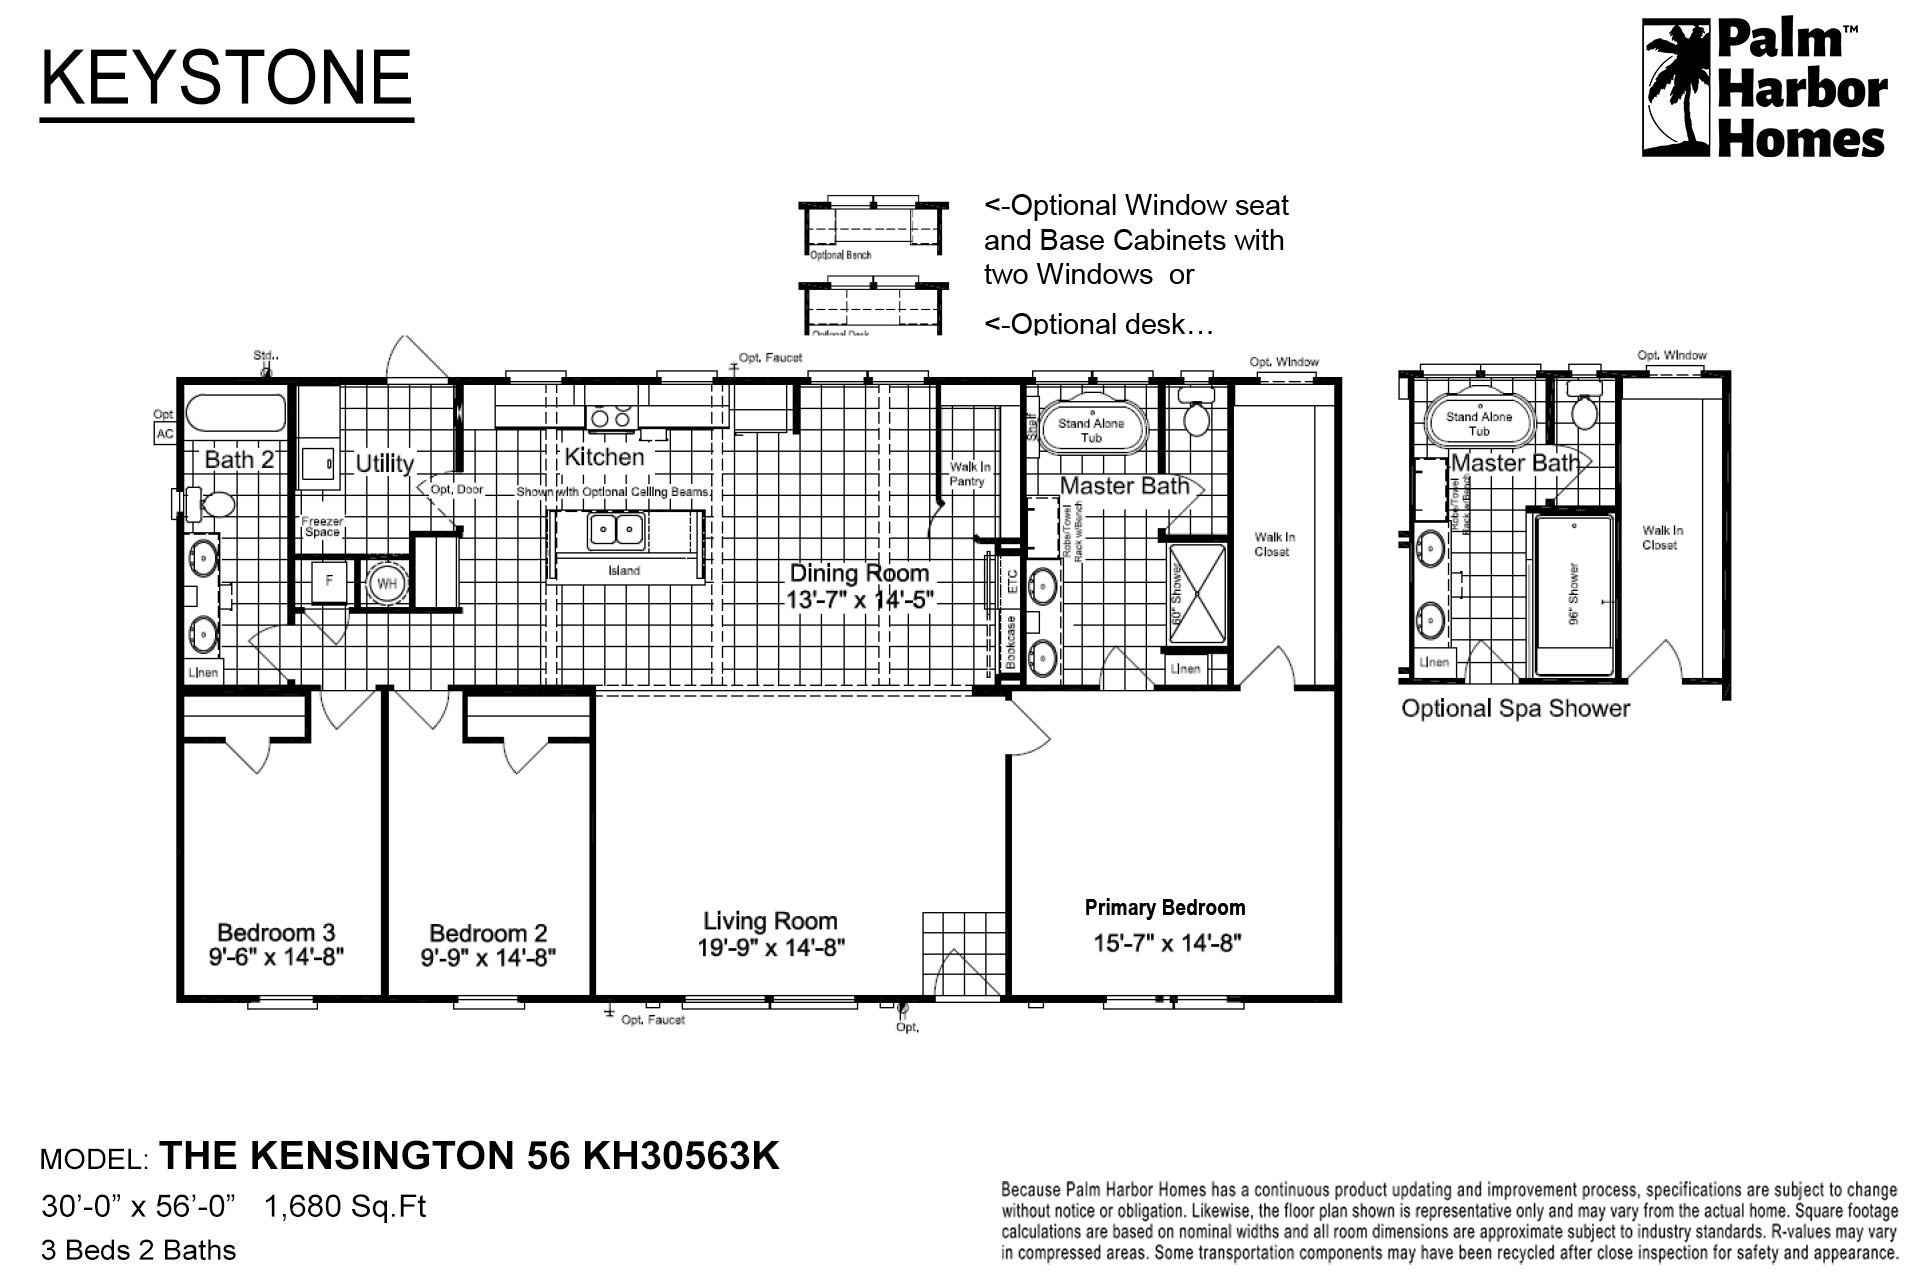 Keystone - The Kensington 56 KH30563K